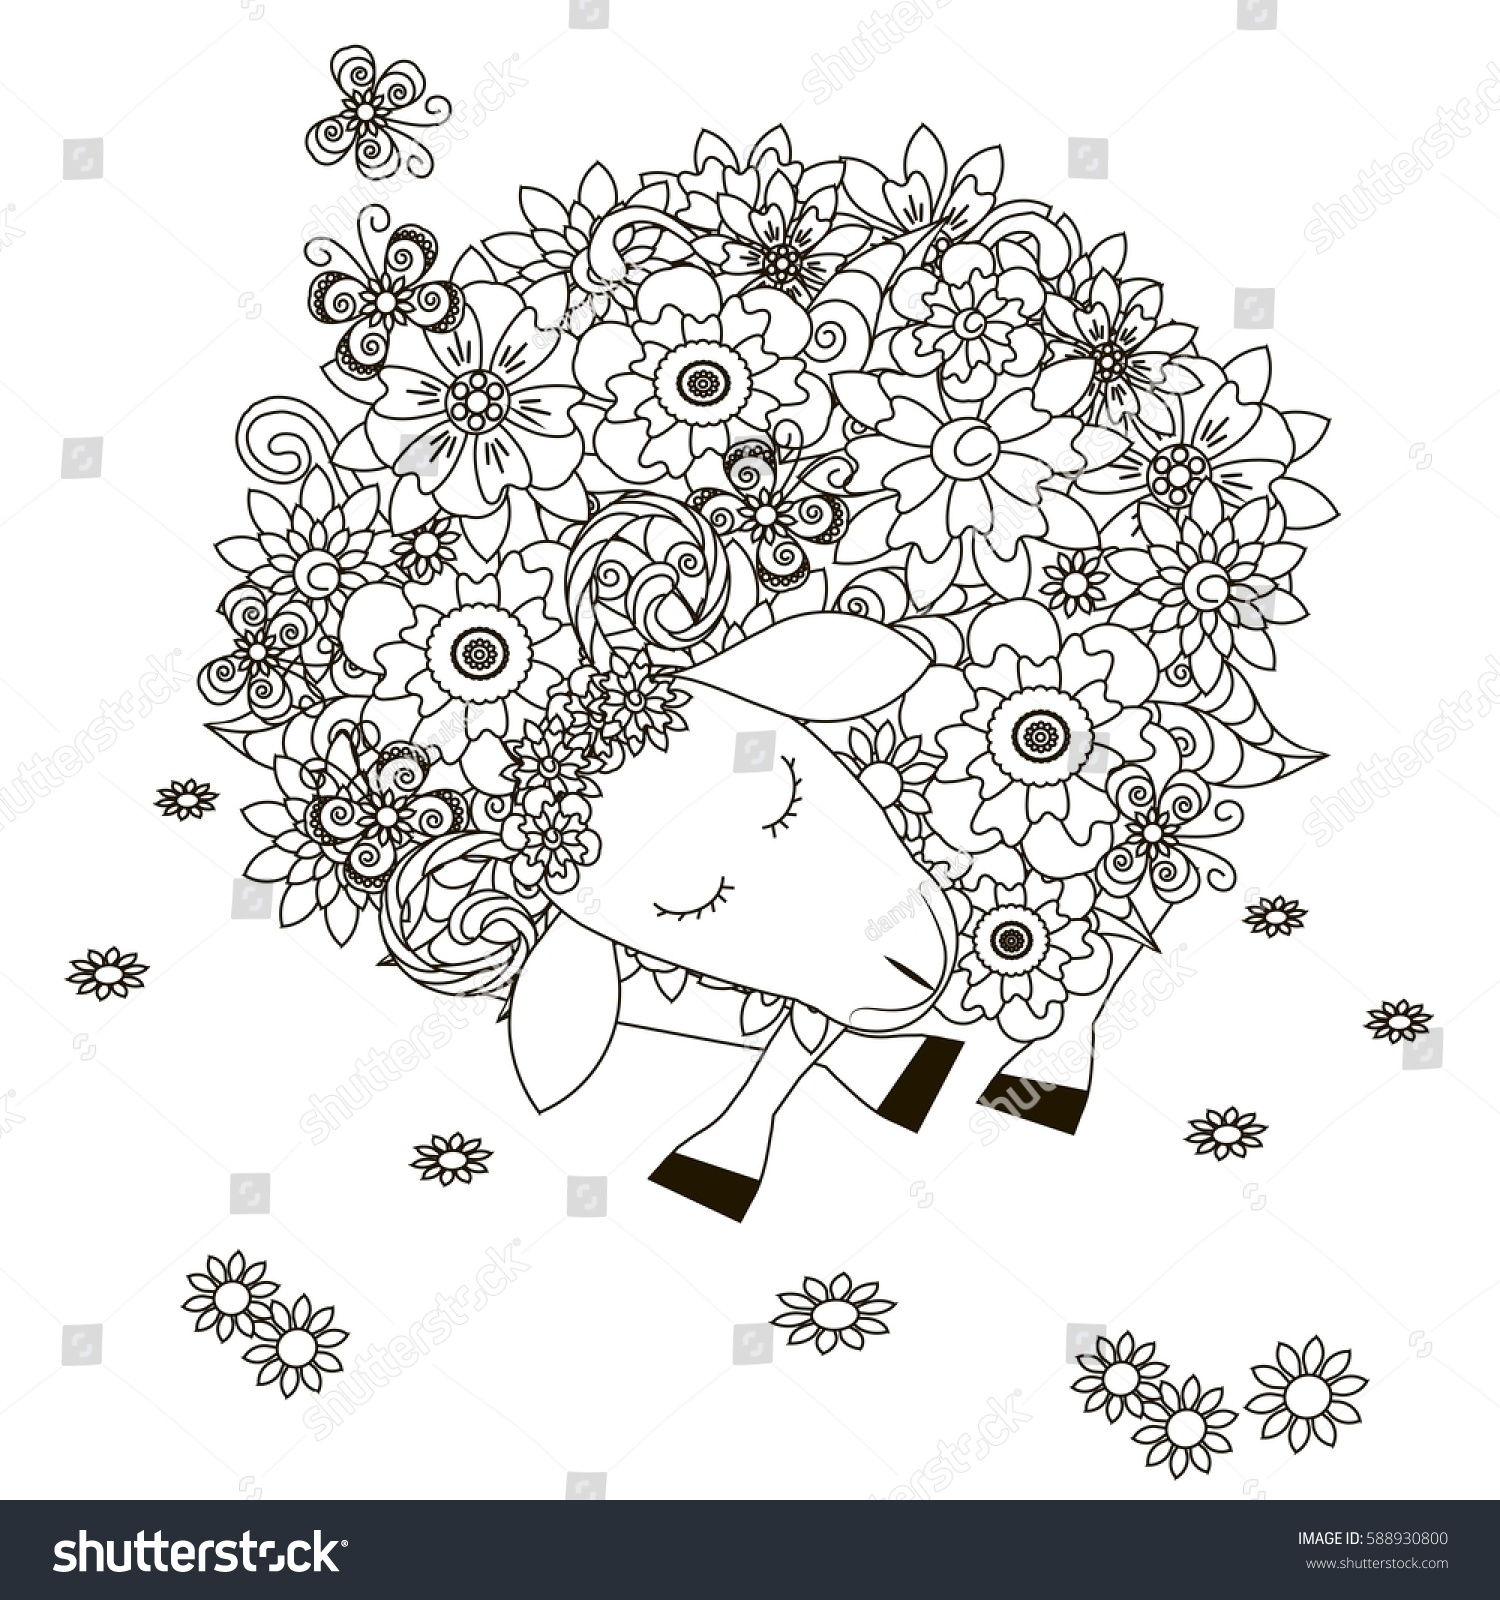 Flowers Sheep, Coloring Page Anti Stress Vector Illustration